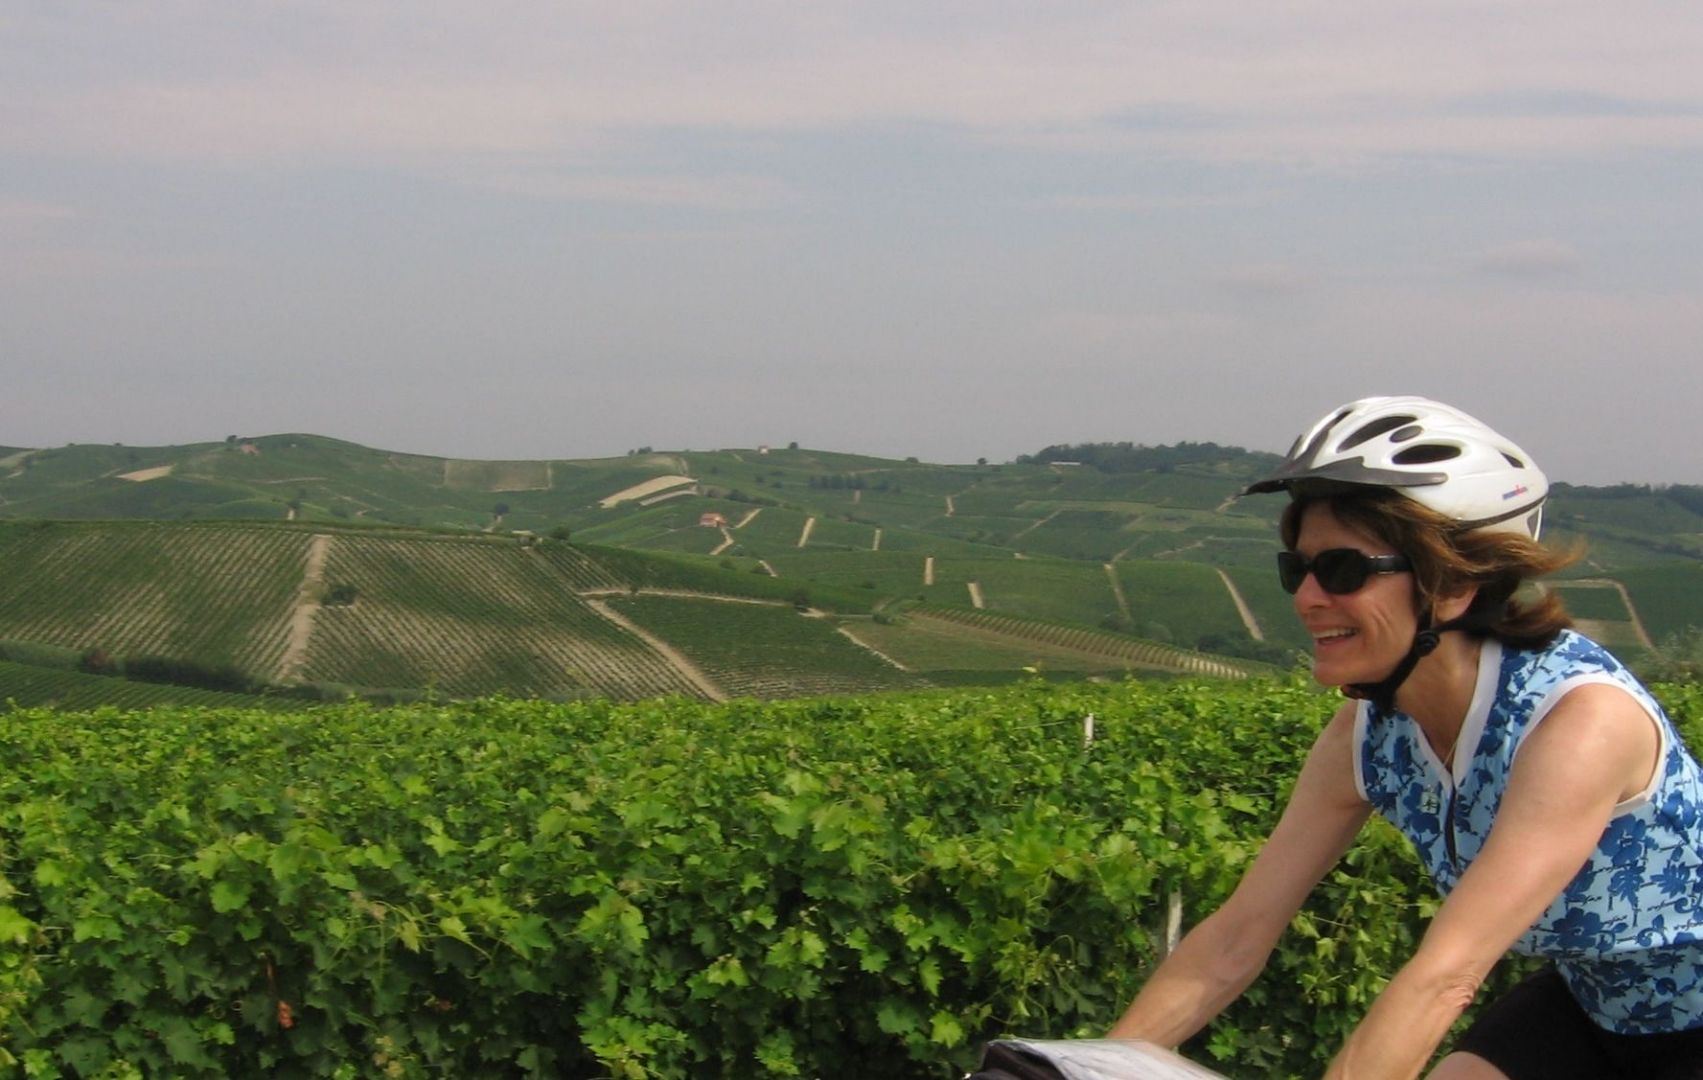 IMG_7813.jpg - Italy - Piemonte - Vineyards and Castles - Leisure Cycling Holiday - Guided - Italia Leisure and Family Cycling